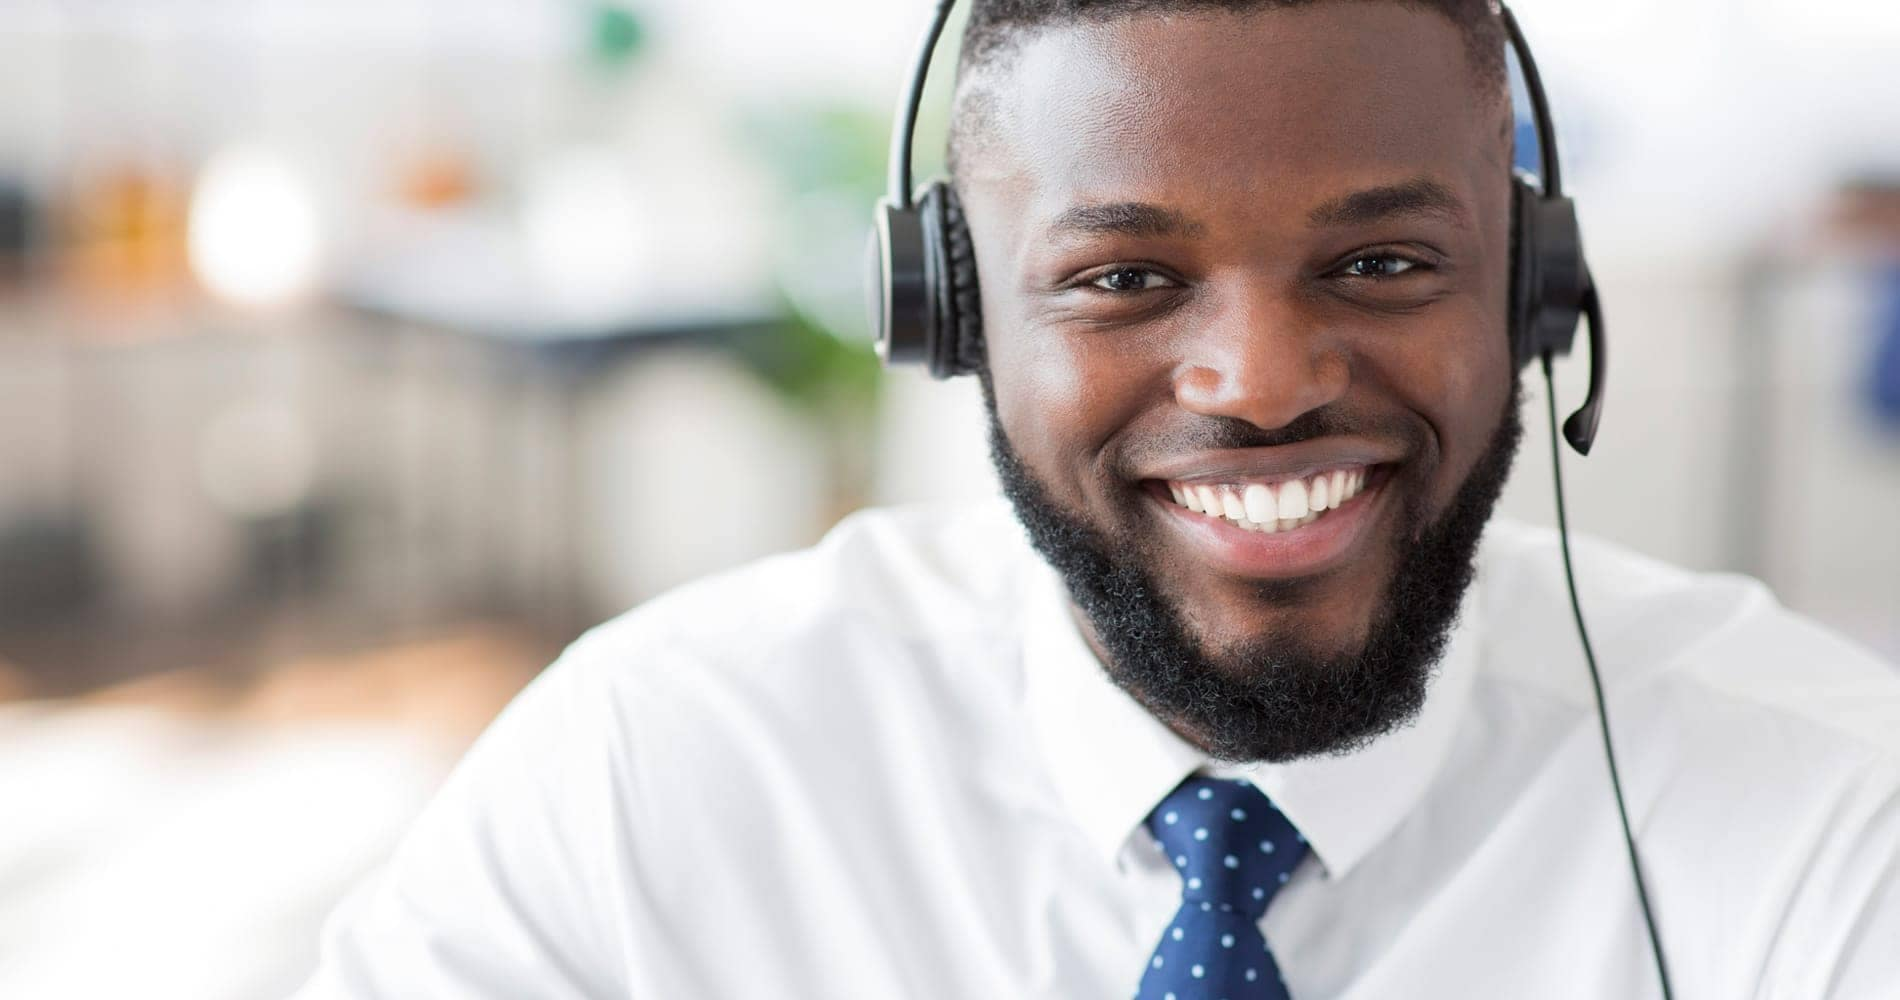 worker with a headset on and smiling